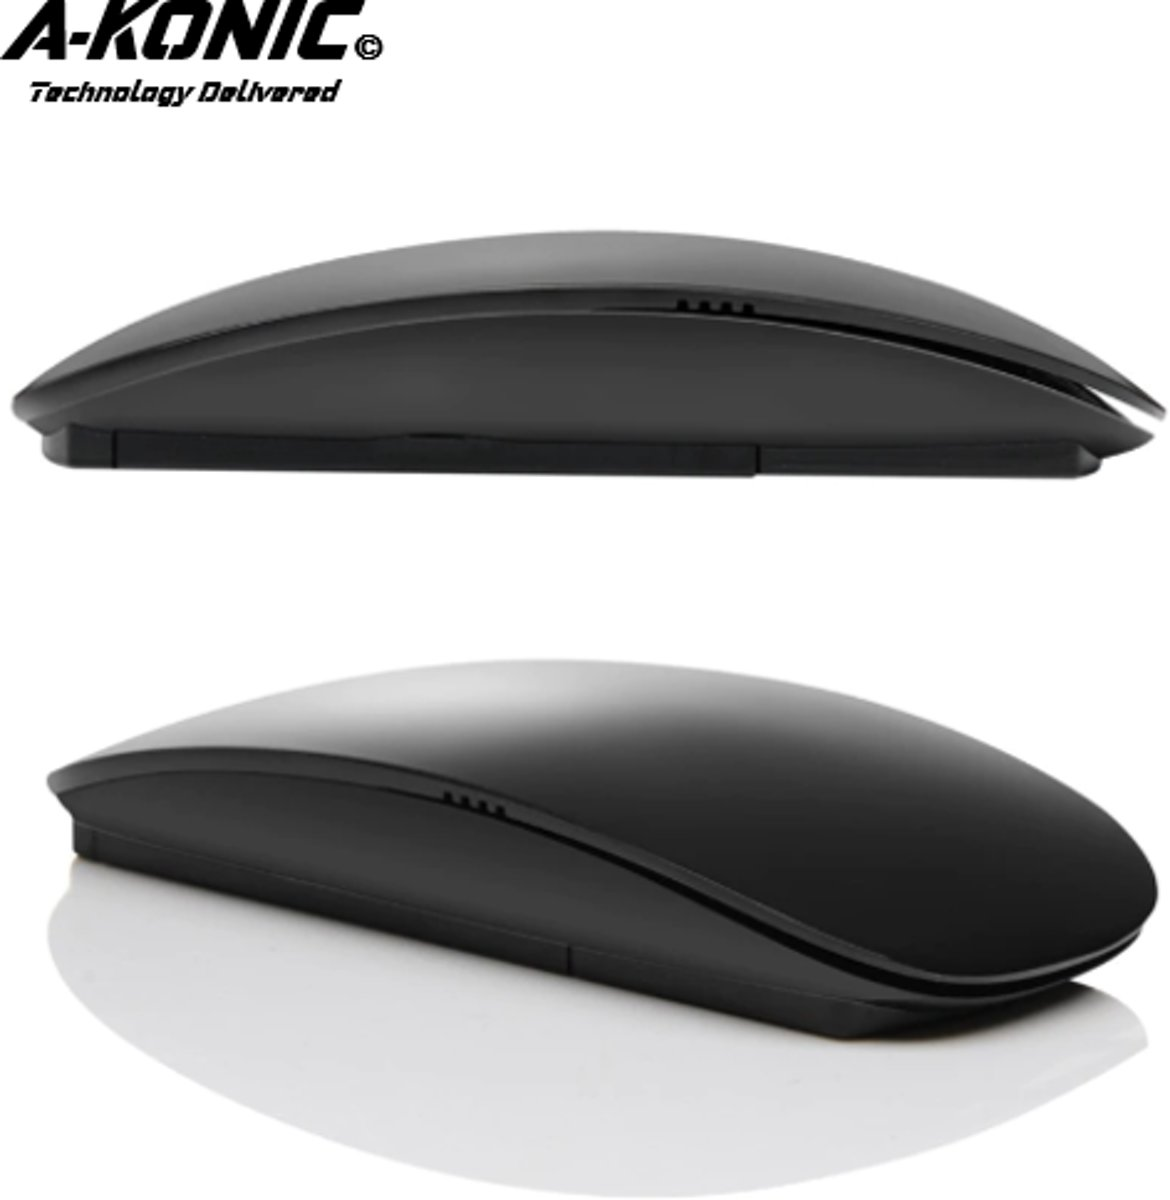 Apple Muis Van A-KONIC© | Draadloze Bluetooth Muis | Magic Mouse | IOS | Bluetooth 3.0 | Universeel | Compatible Apple Macbook | Chromebook | IMAC | Surface | XPS | Dell | Lenovo | Samsung | HP |Zwart